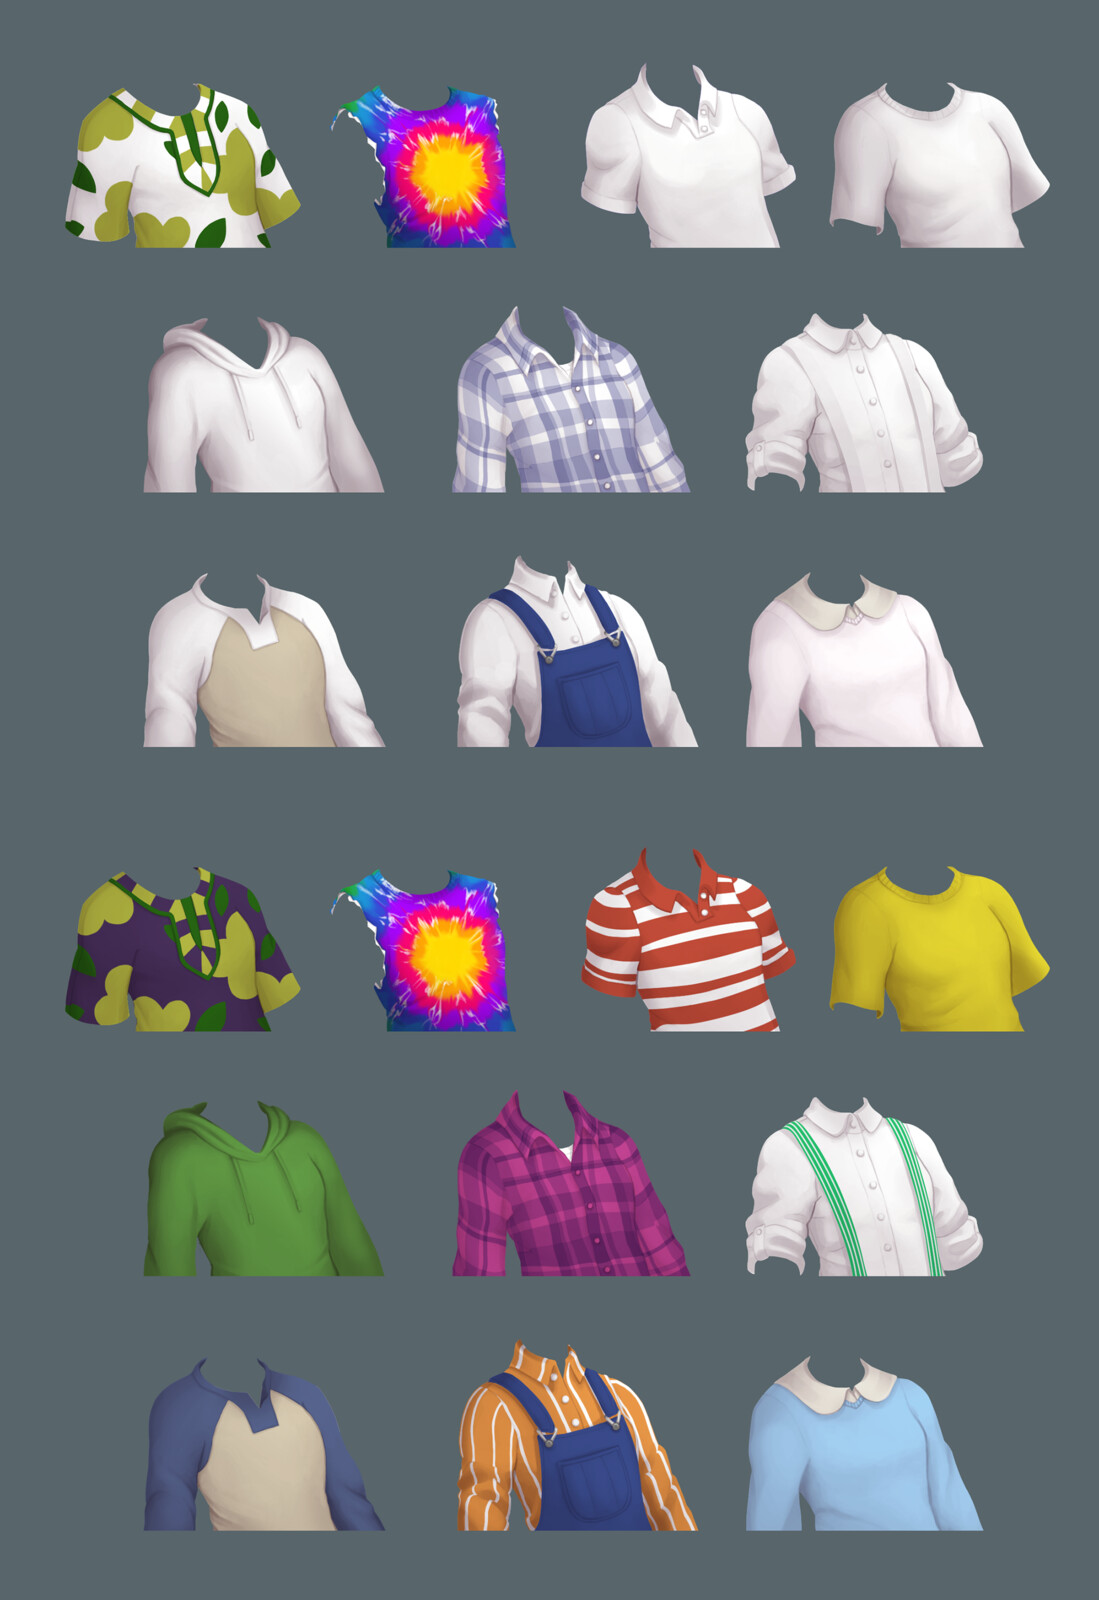 Selection of clothing items